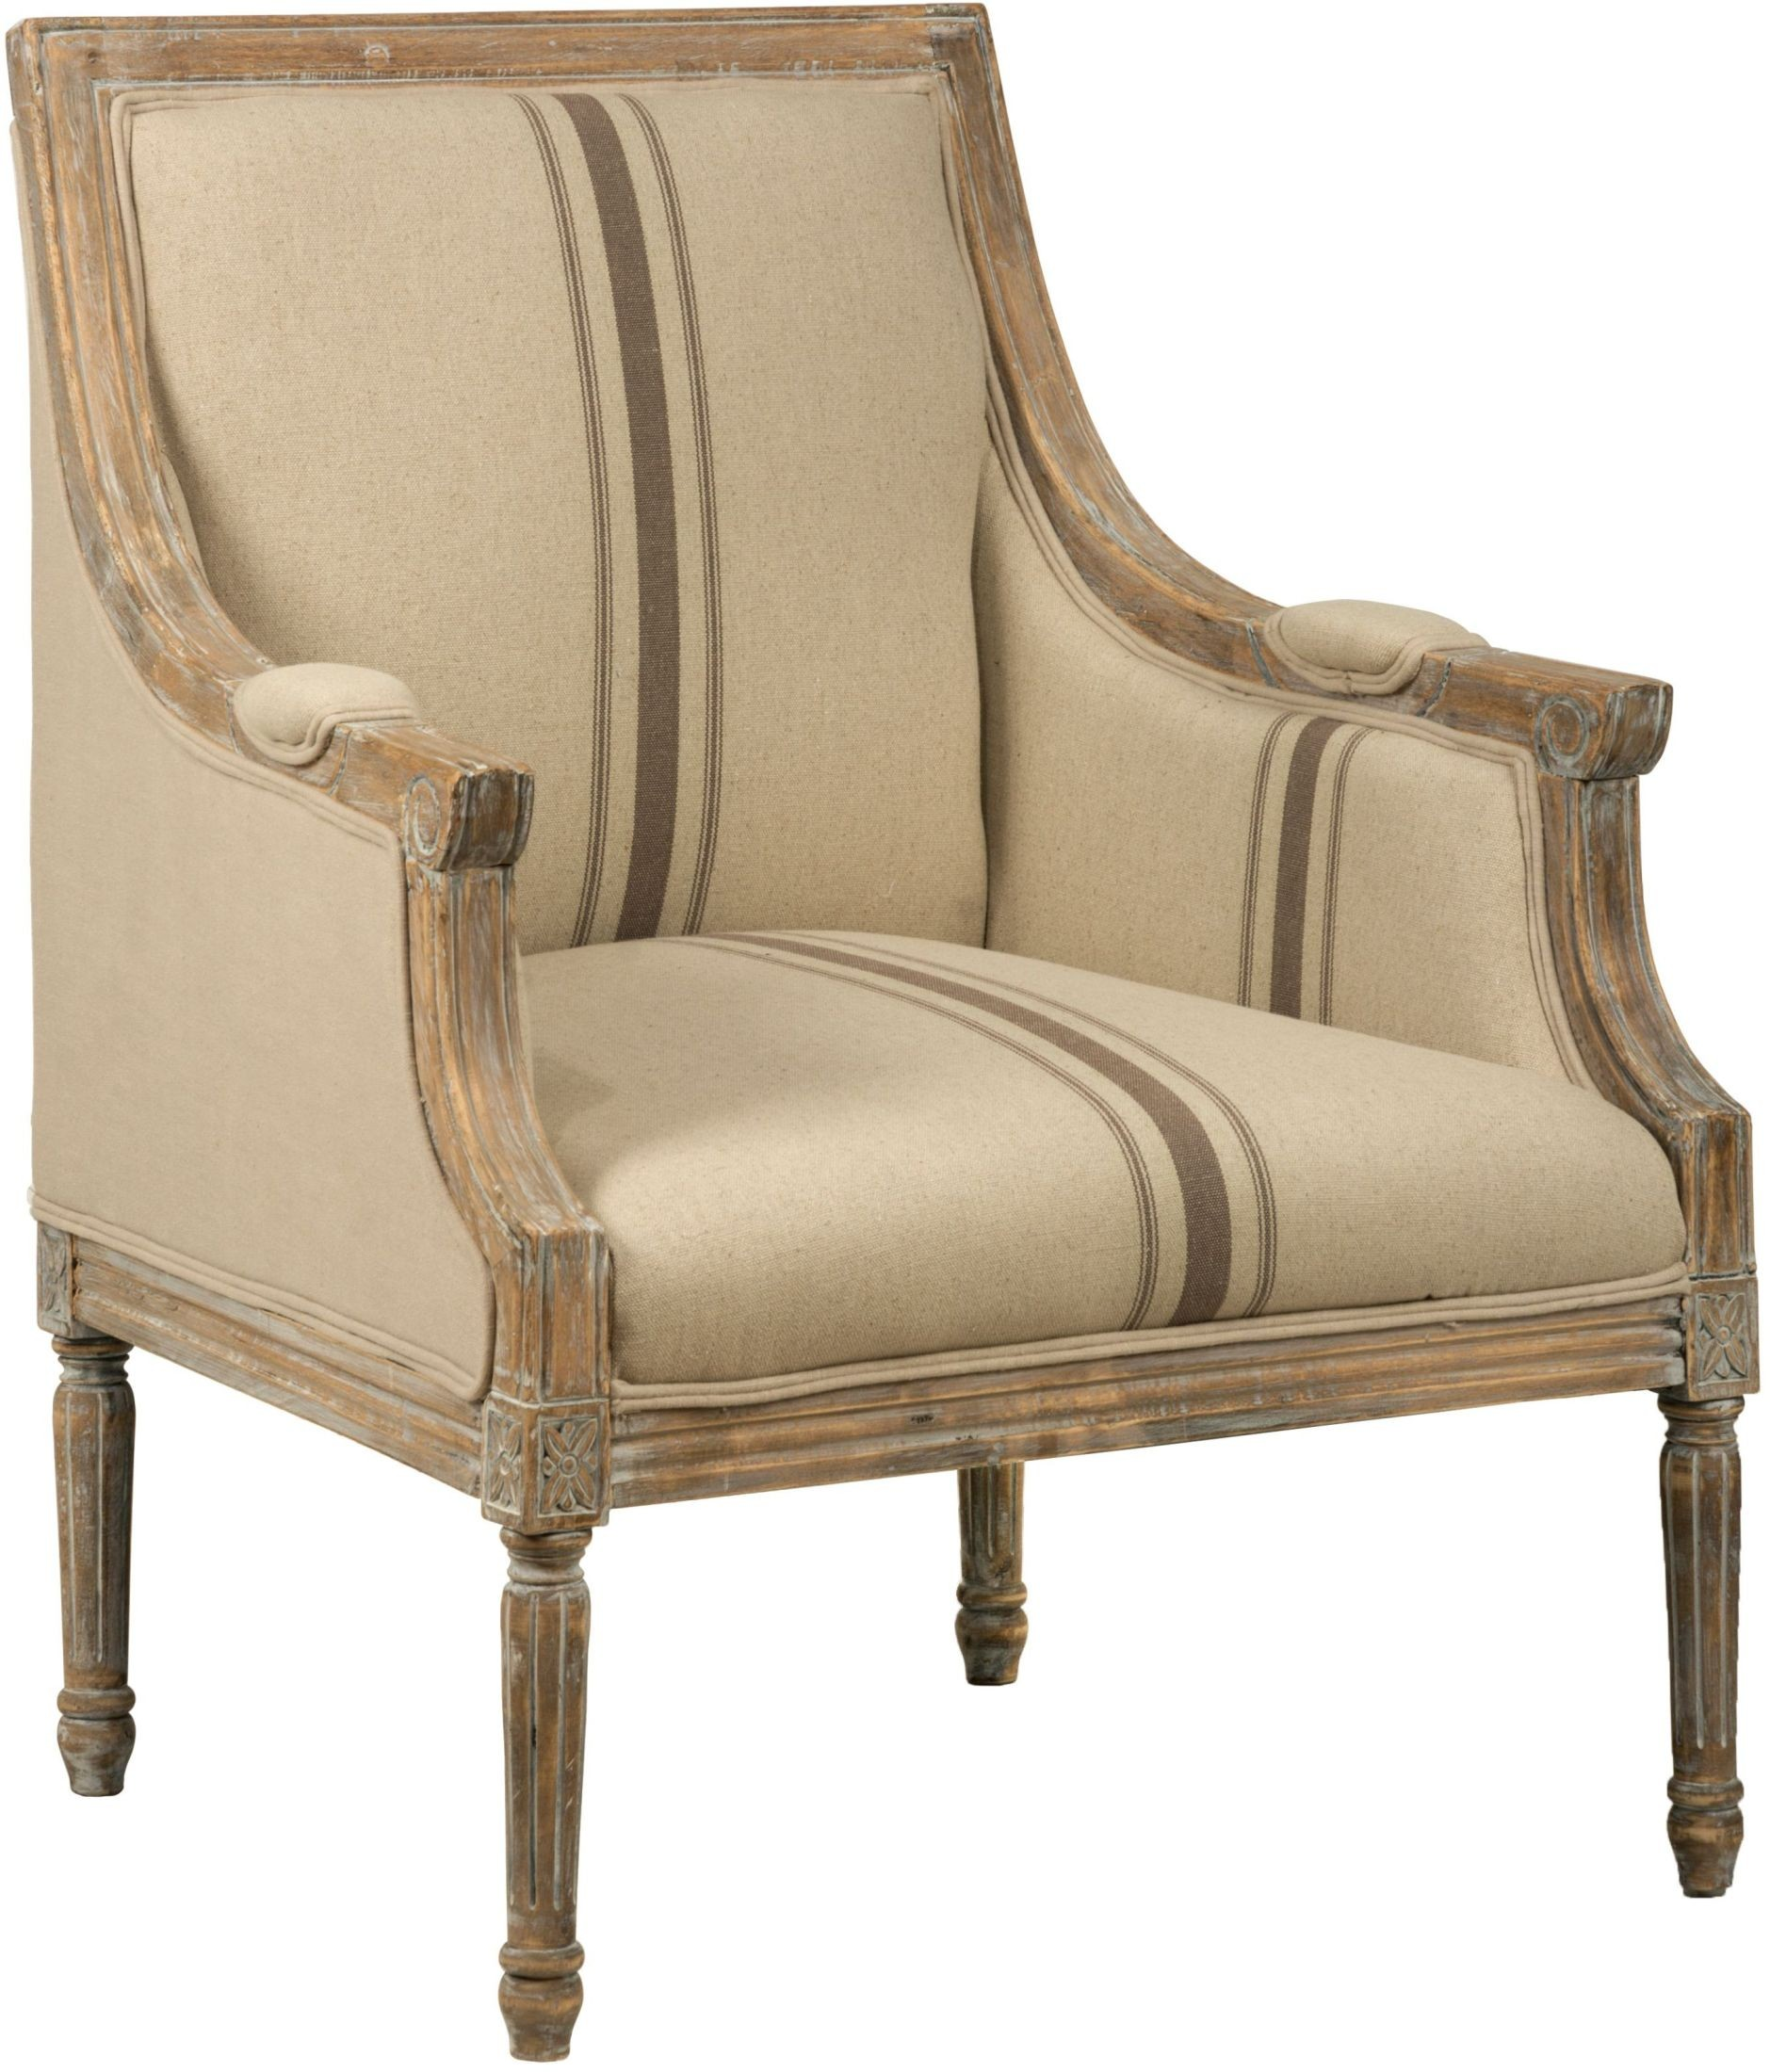 Tan Accent Chair Mckenna Tan Accent Chair From Jofran Coleman Furniture